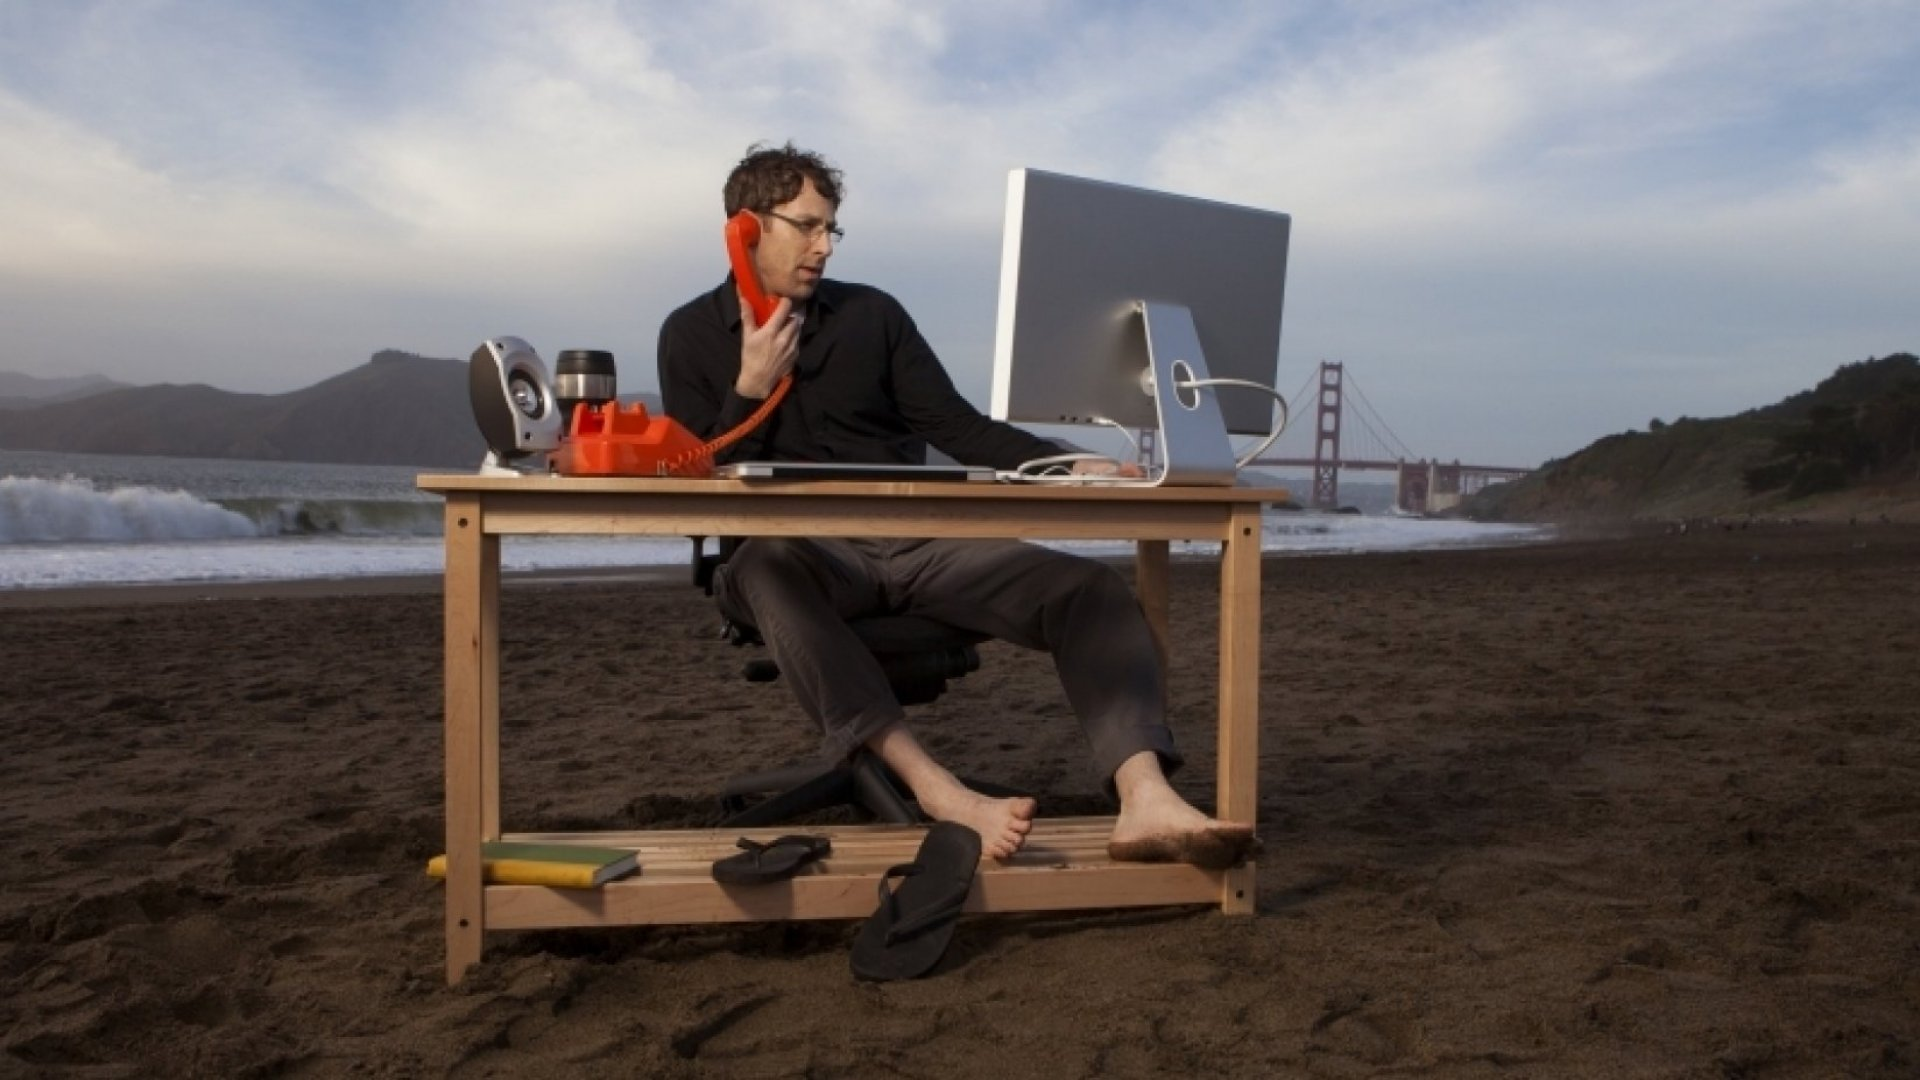 10 Best Freelance Websites to Find Skilled Contractors